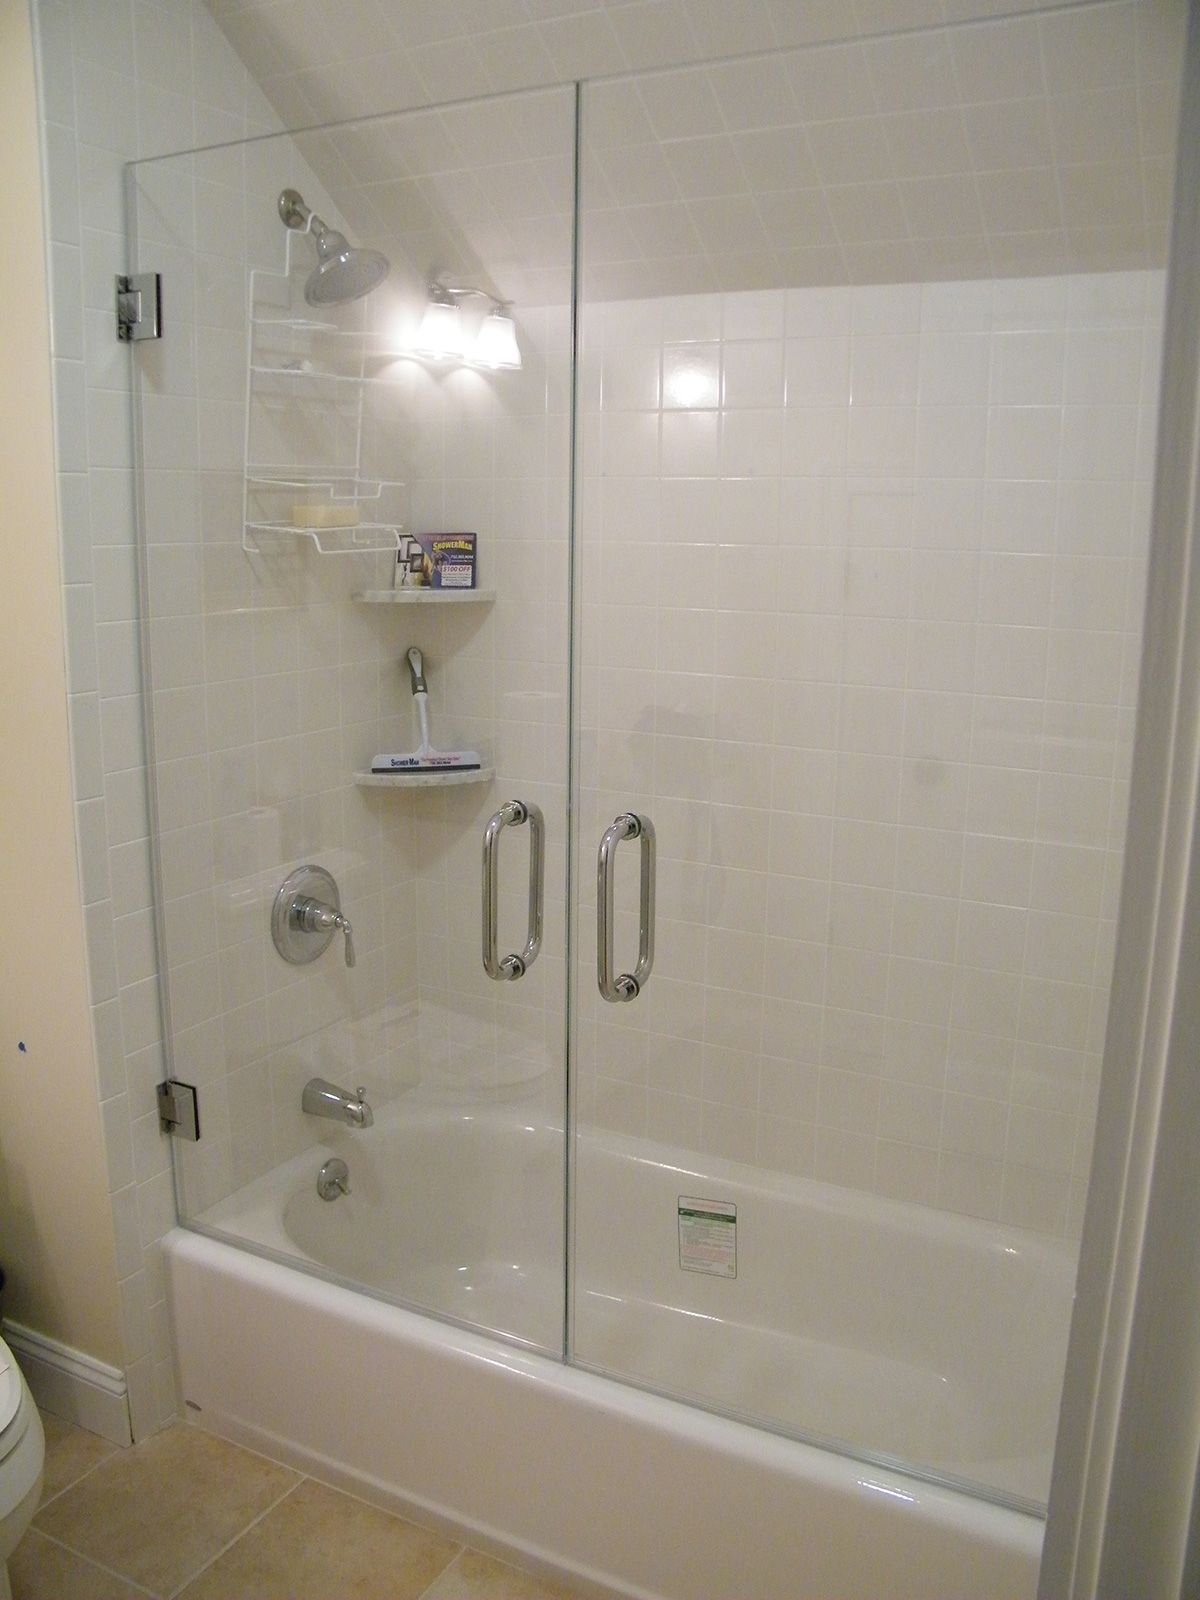 Bathroom Renovations NJ Bathroom Renovation Ideas Shower - Bathroom shower glass replacement